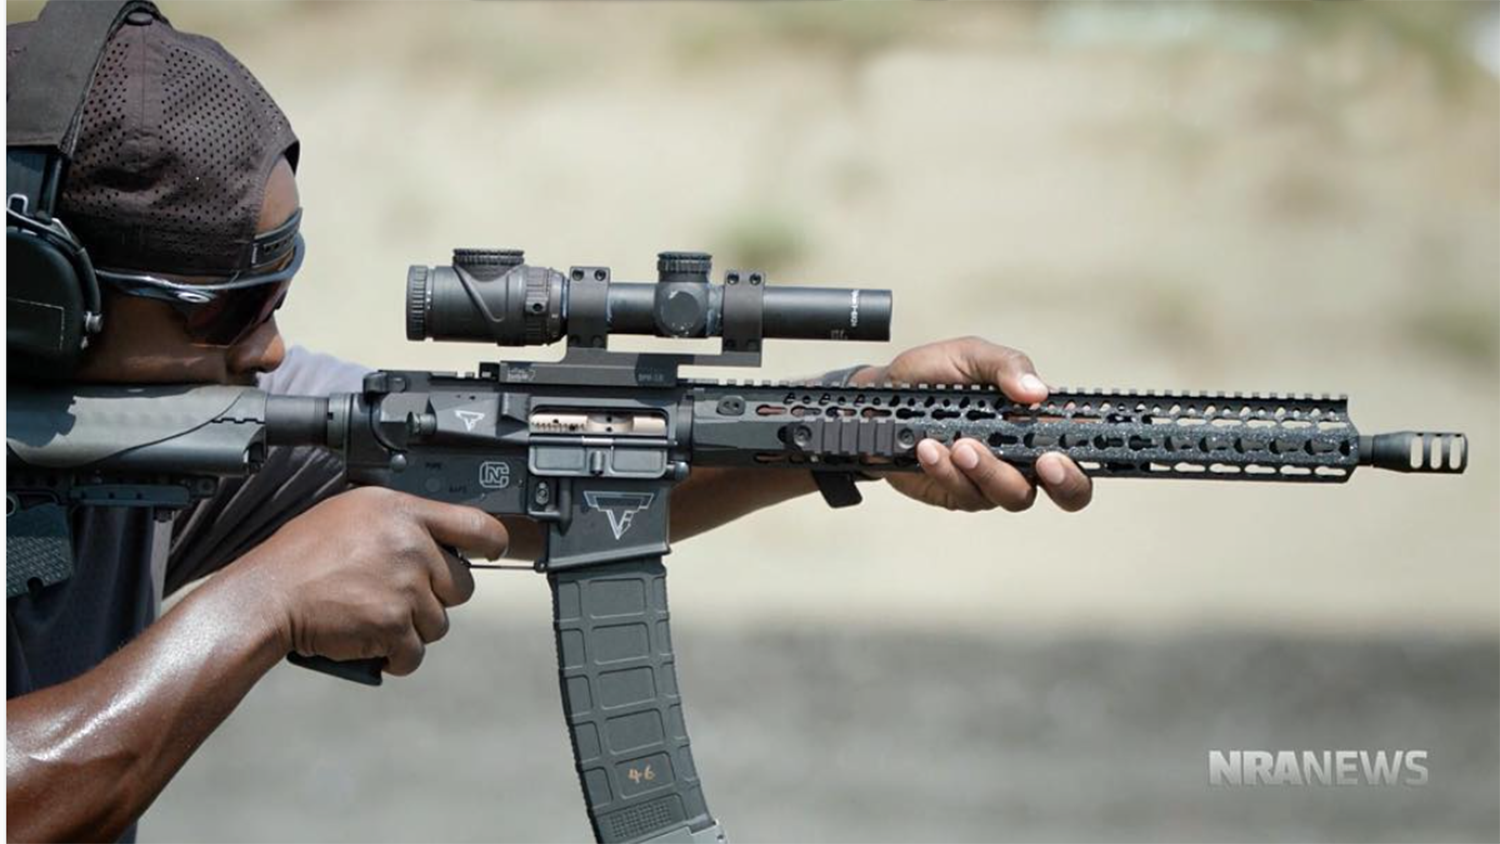 Why the AR-15 is America's Most Popular Rifle